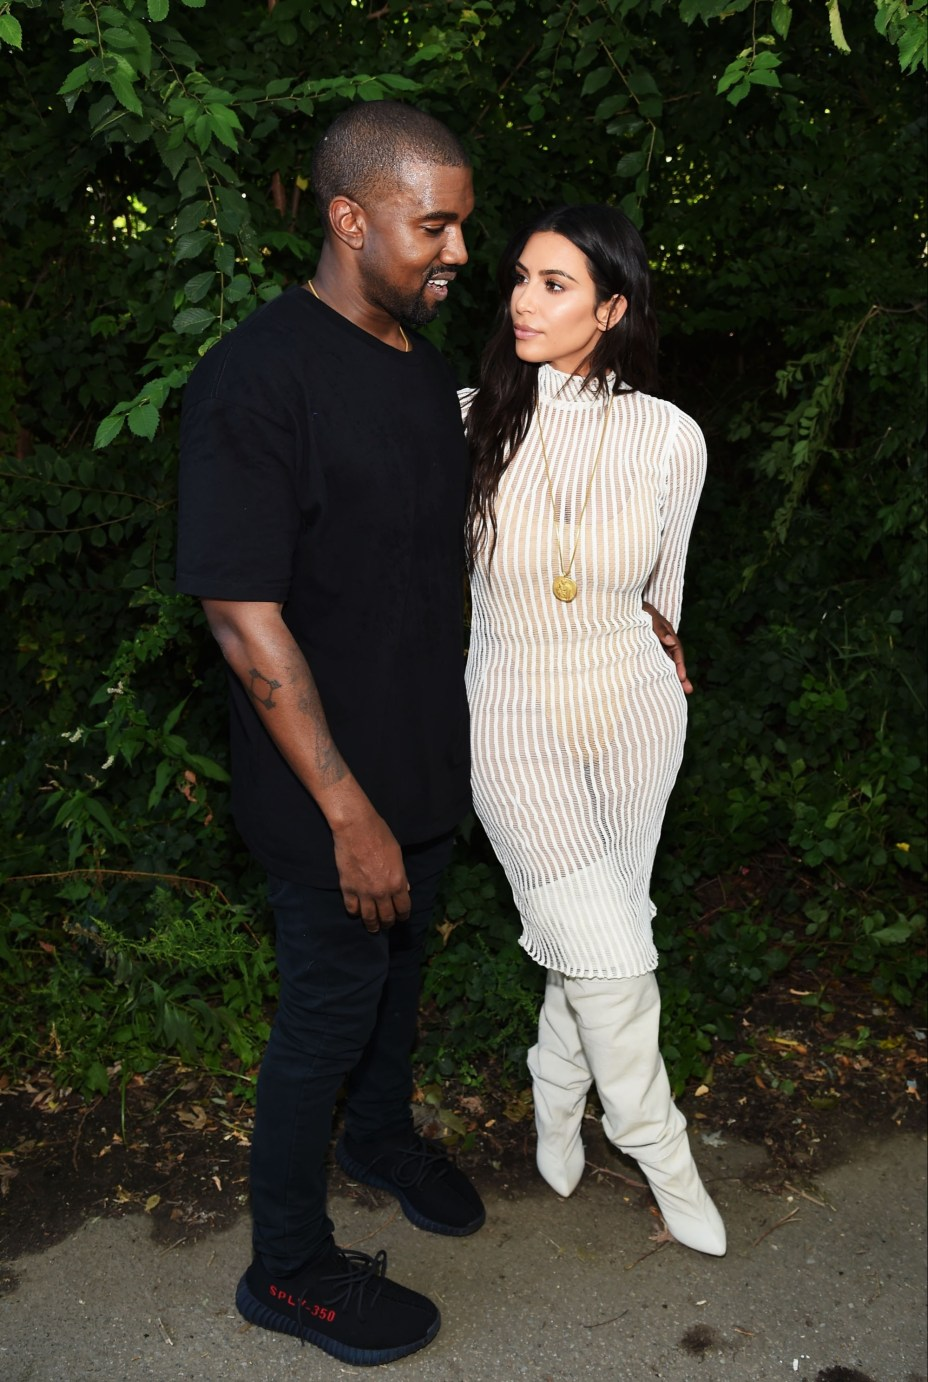 The pair are said to be living separate lives after Kim 'cut off all contact' with Kanye